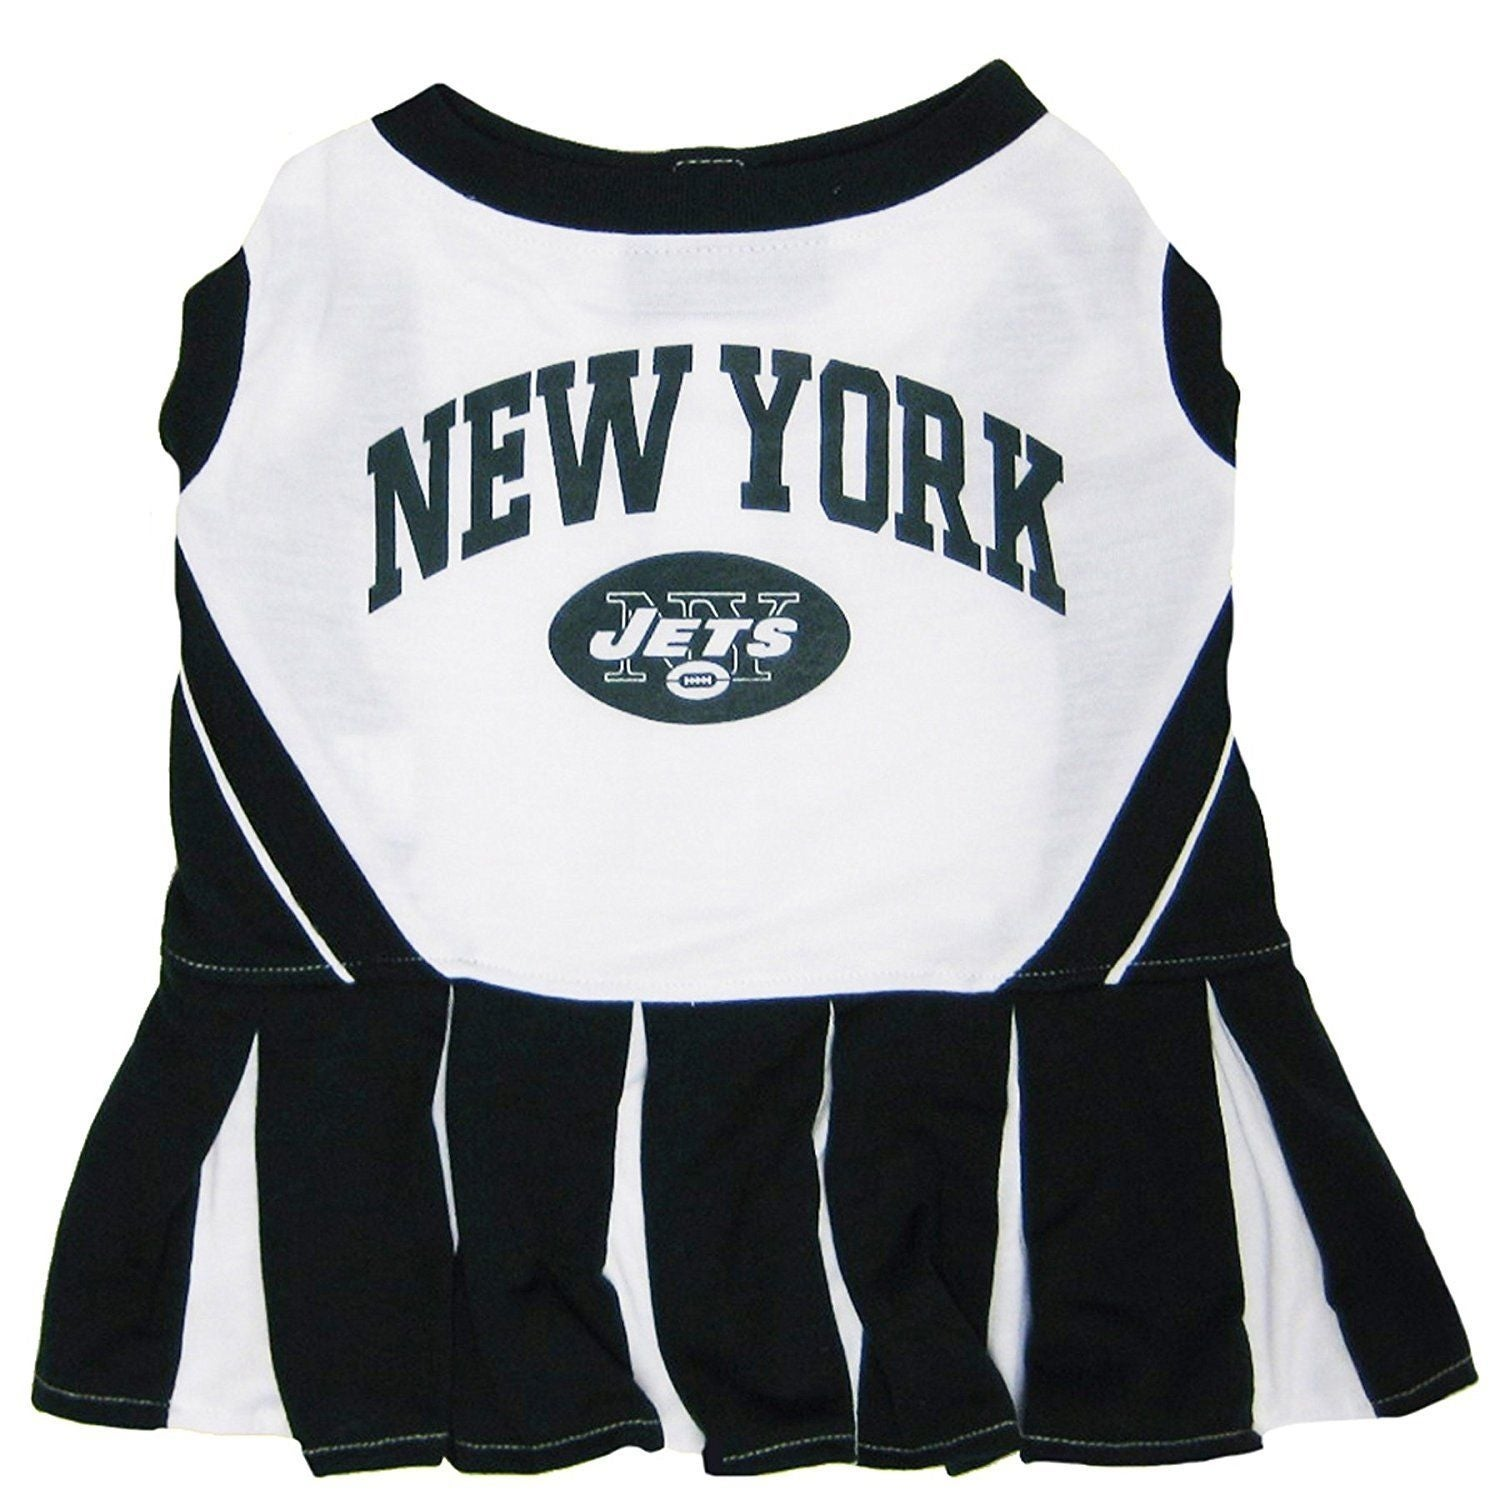 41e35c07 NFL Cheerleader Outfit for Dogs & Cats. 32 Football Teams, 3 Sizes. Licensed